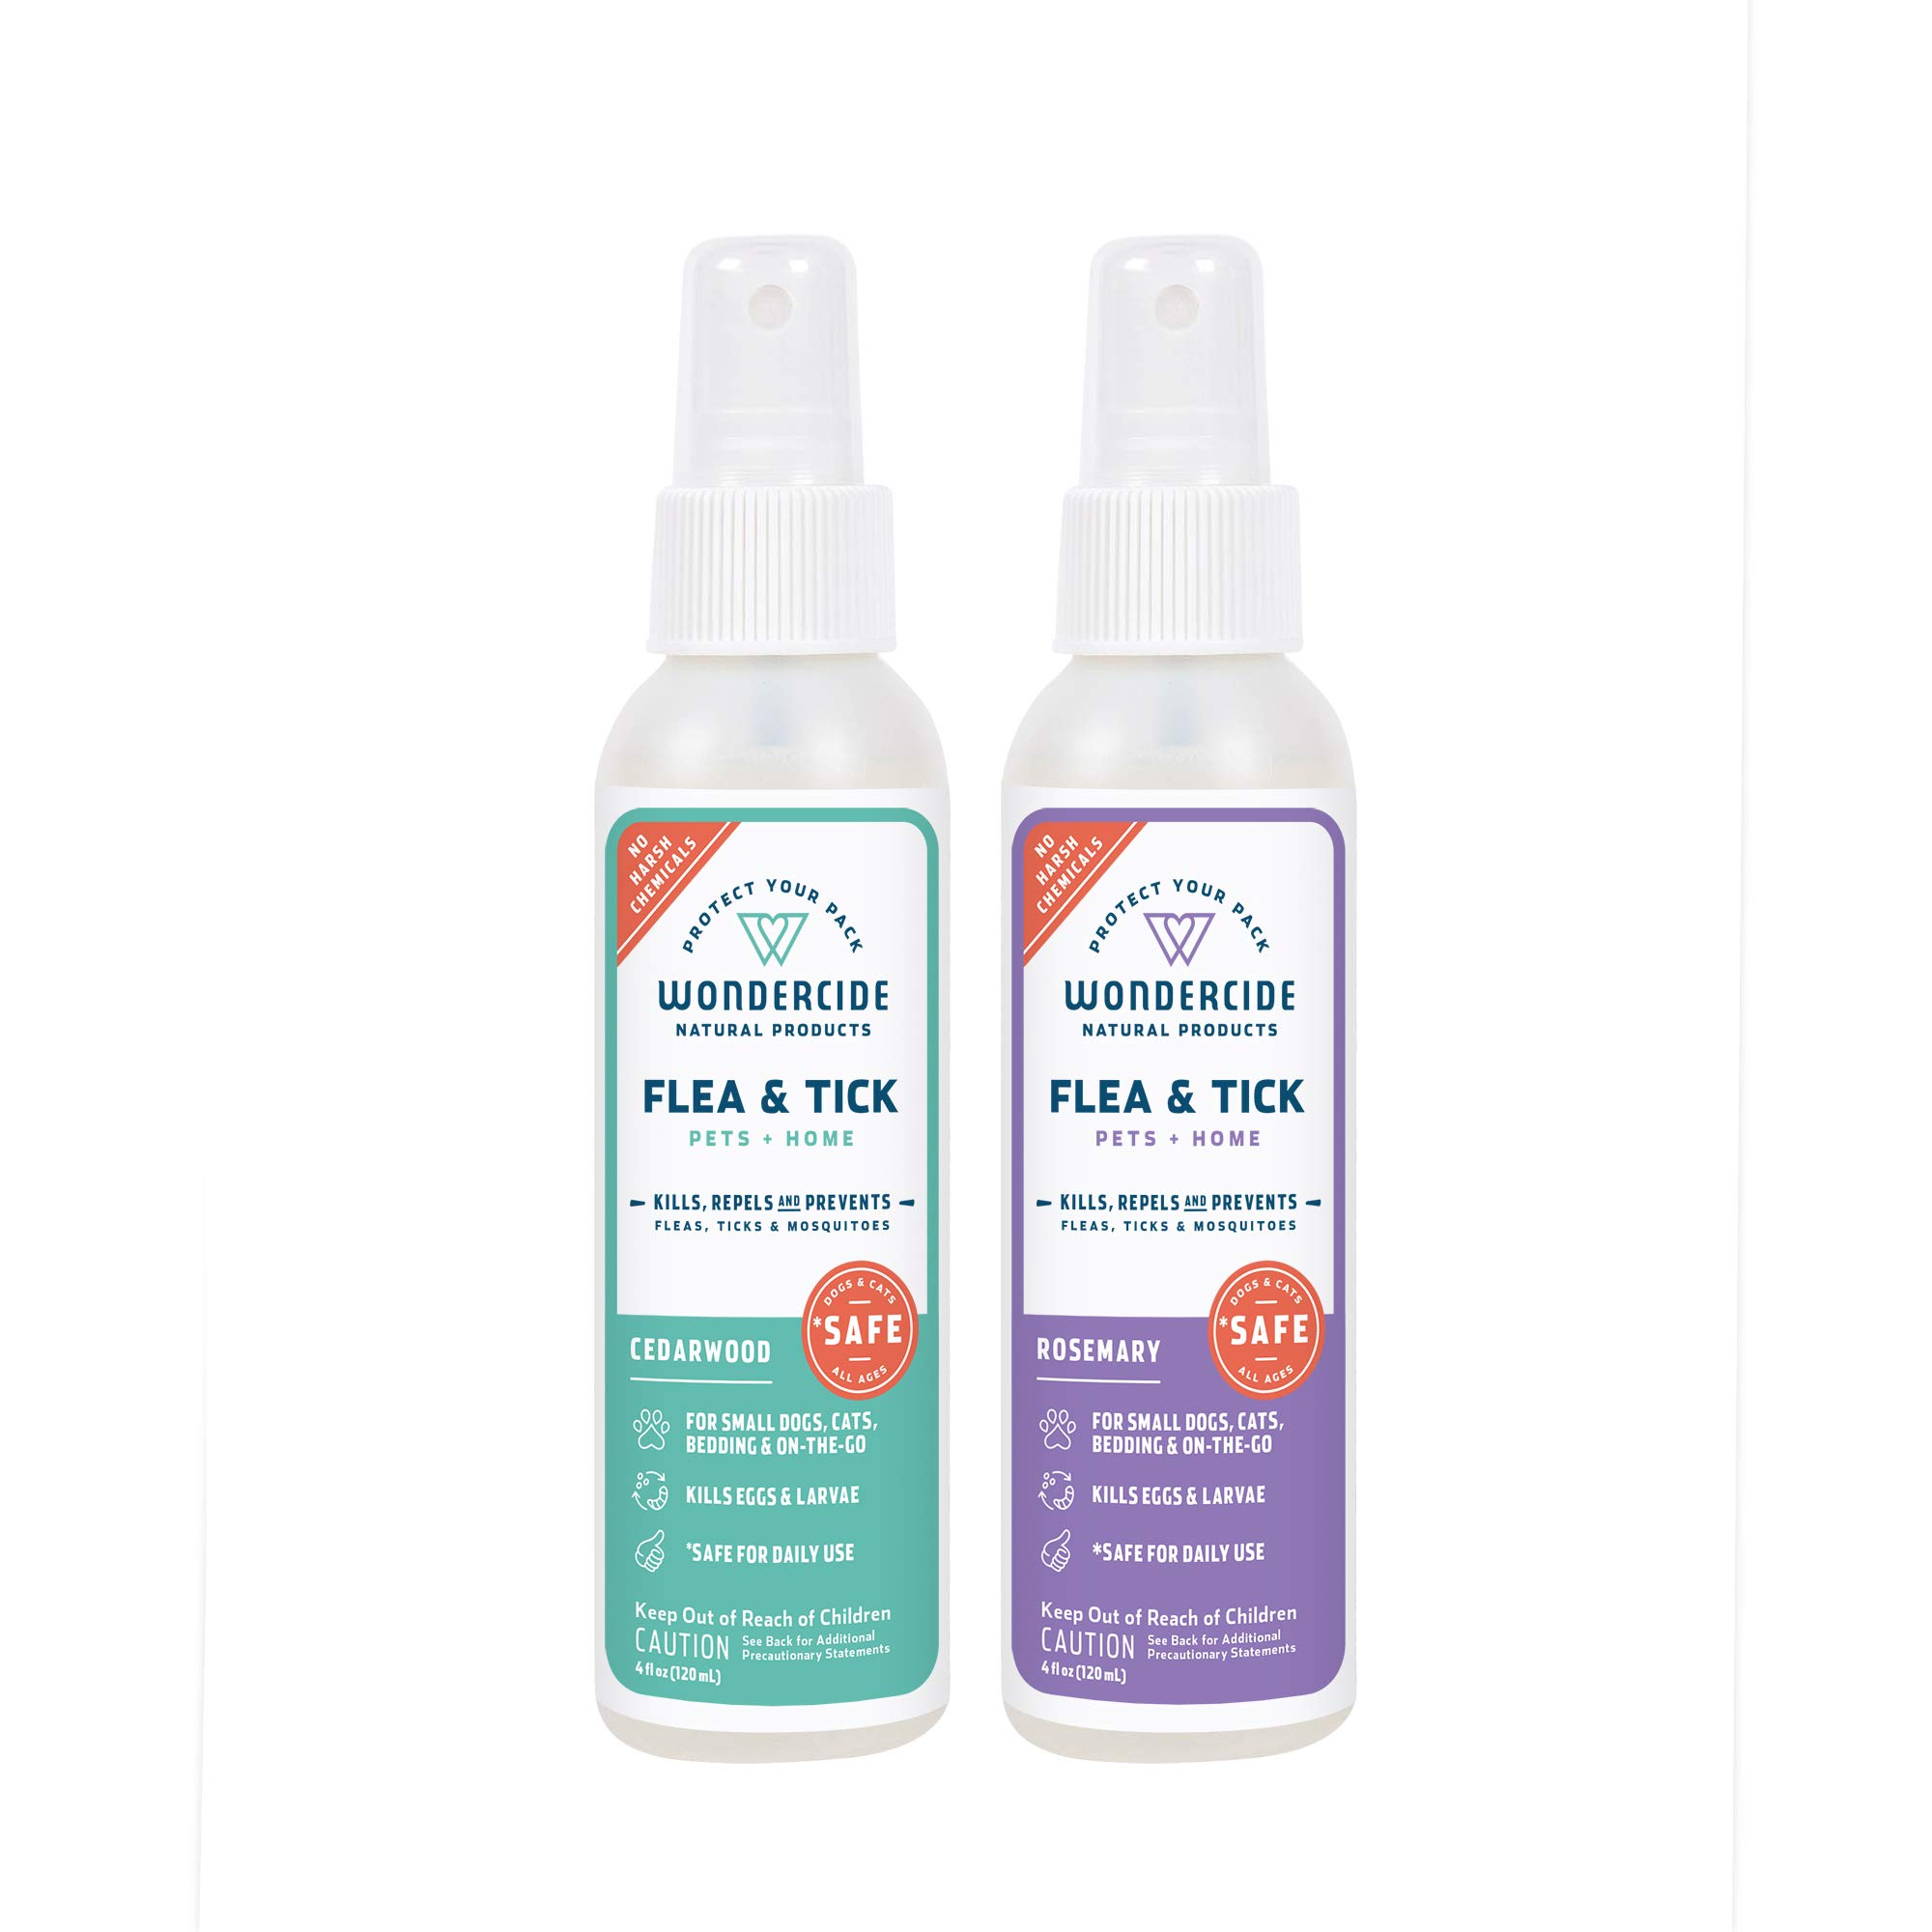 Wondercide Cat Flea and Tick Prevention and Treatment Spray - 4oz - 2 Pack- 1 Rosemary & 1 Cedar